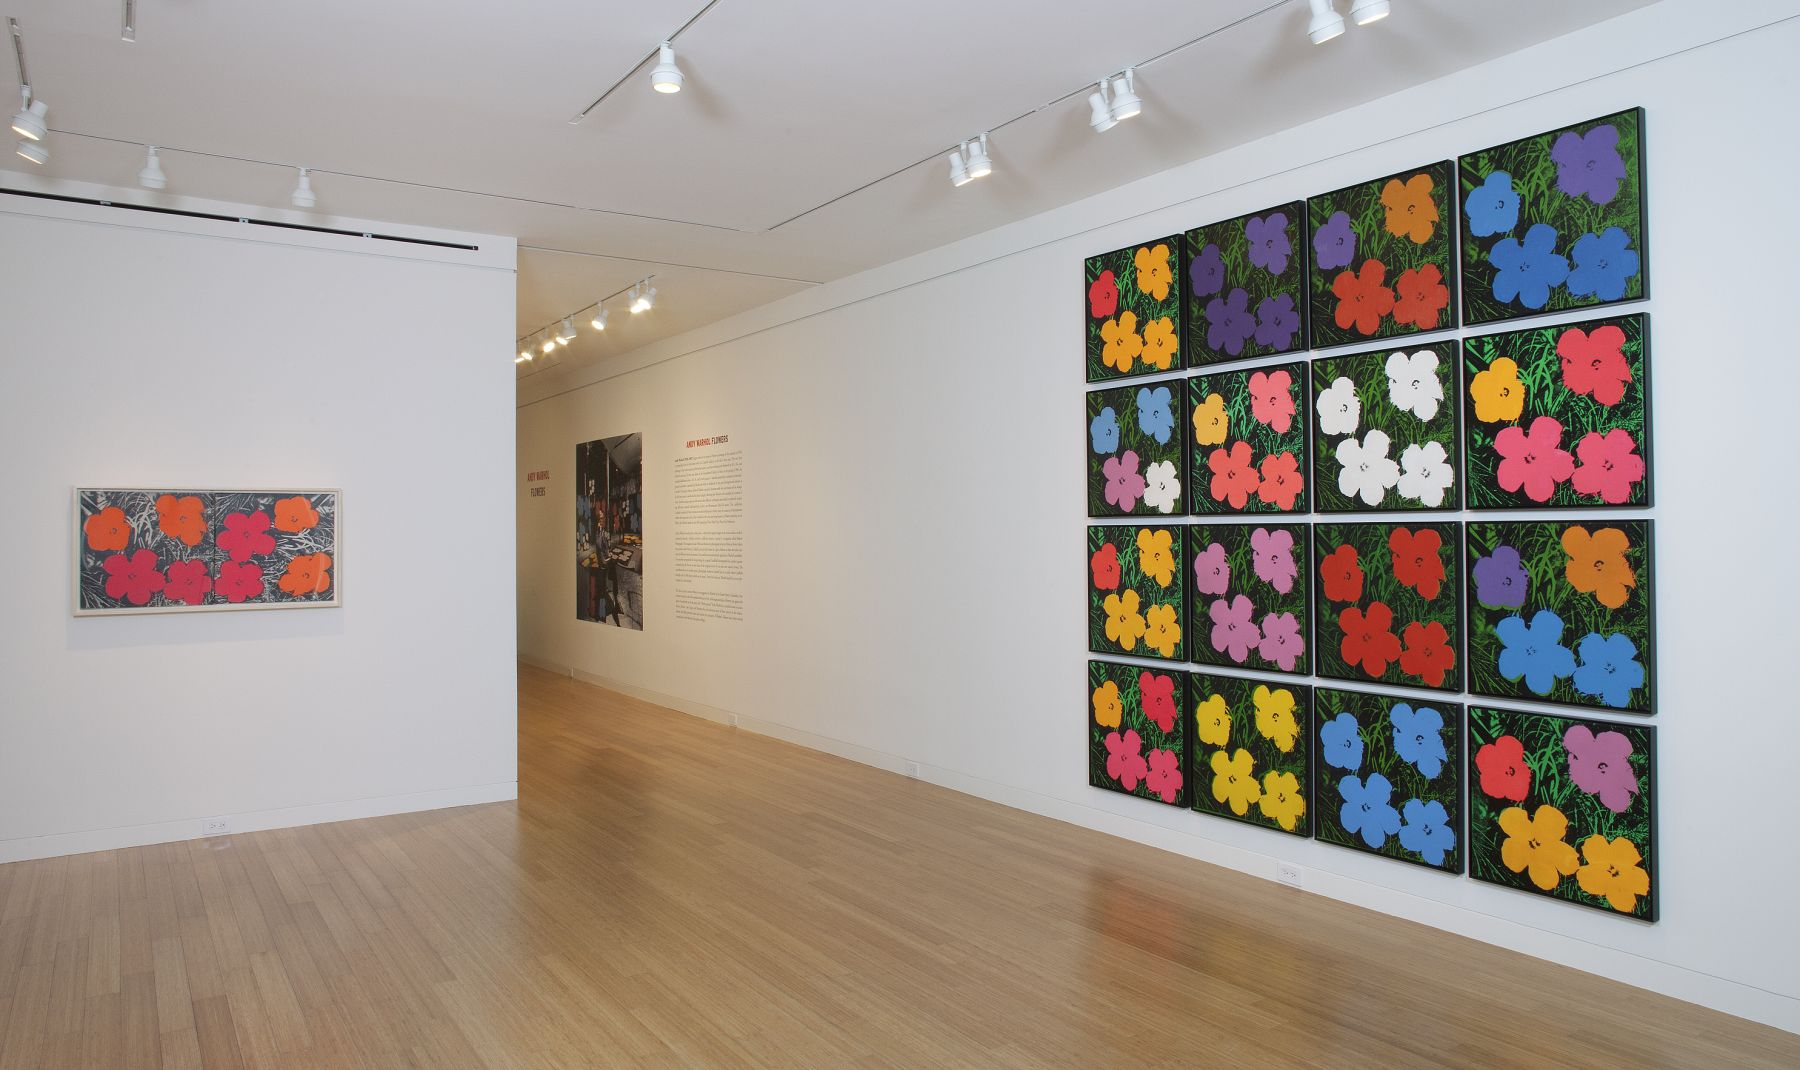 Andy Warhol, Flowers, 1964/1965., © 2012 The Andy Warhol Foundation for the Visual Arts, Inc./Artists Rights Society (ARS), New York.